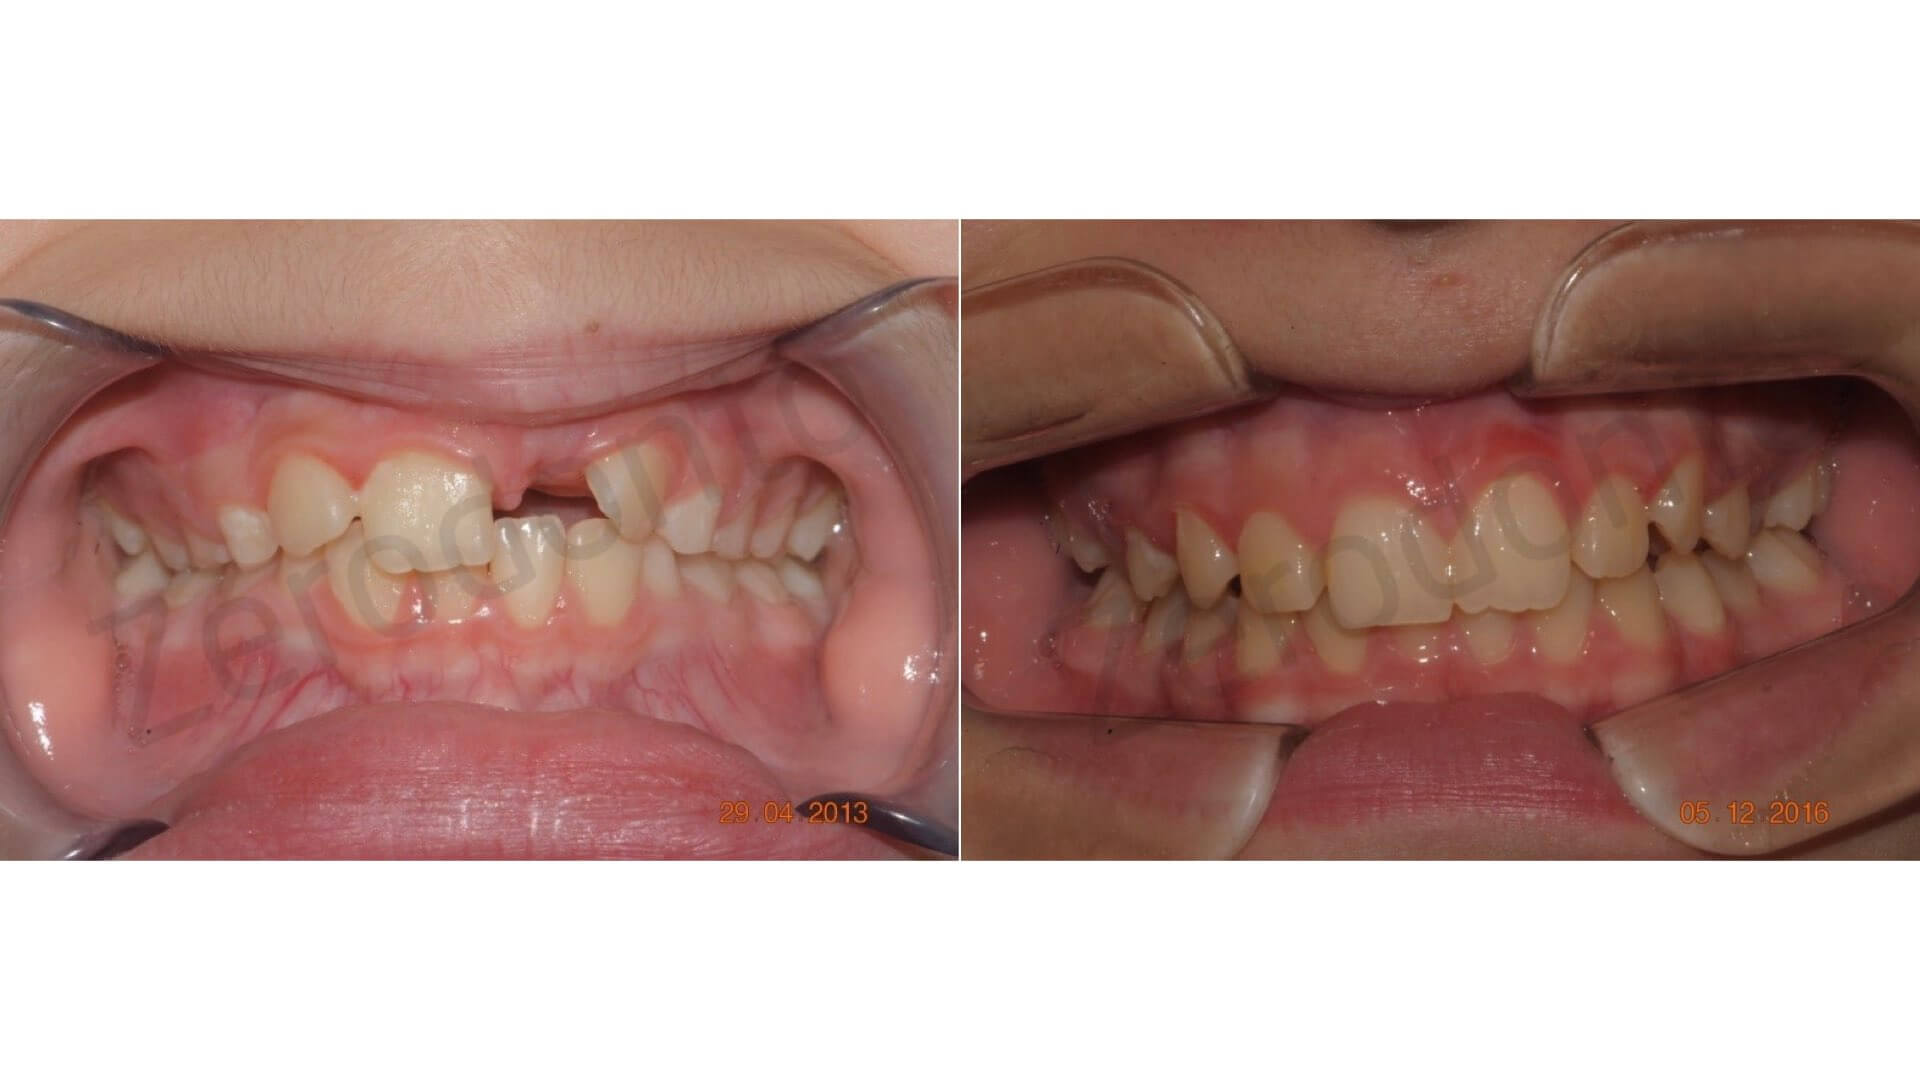 Maxillary functional orthopedics and its potentiality: a clinical case of guided eruption of an upper incisor in bone retention